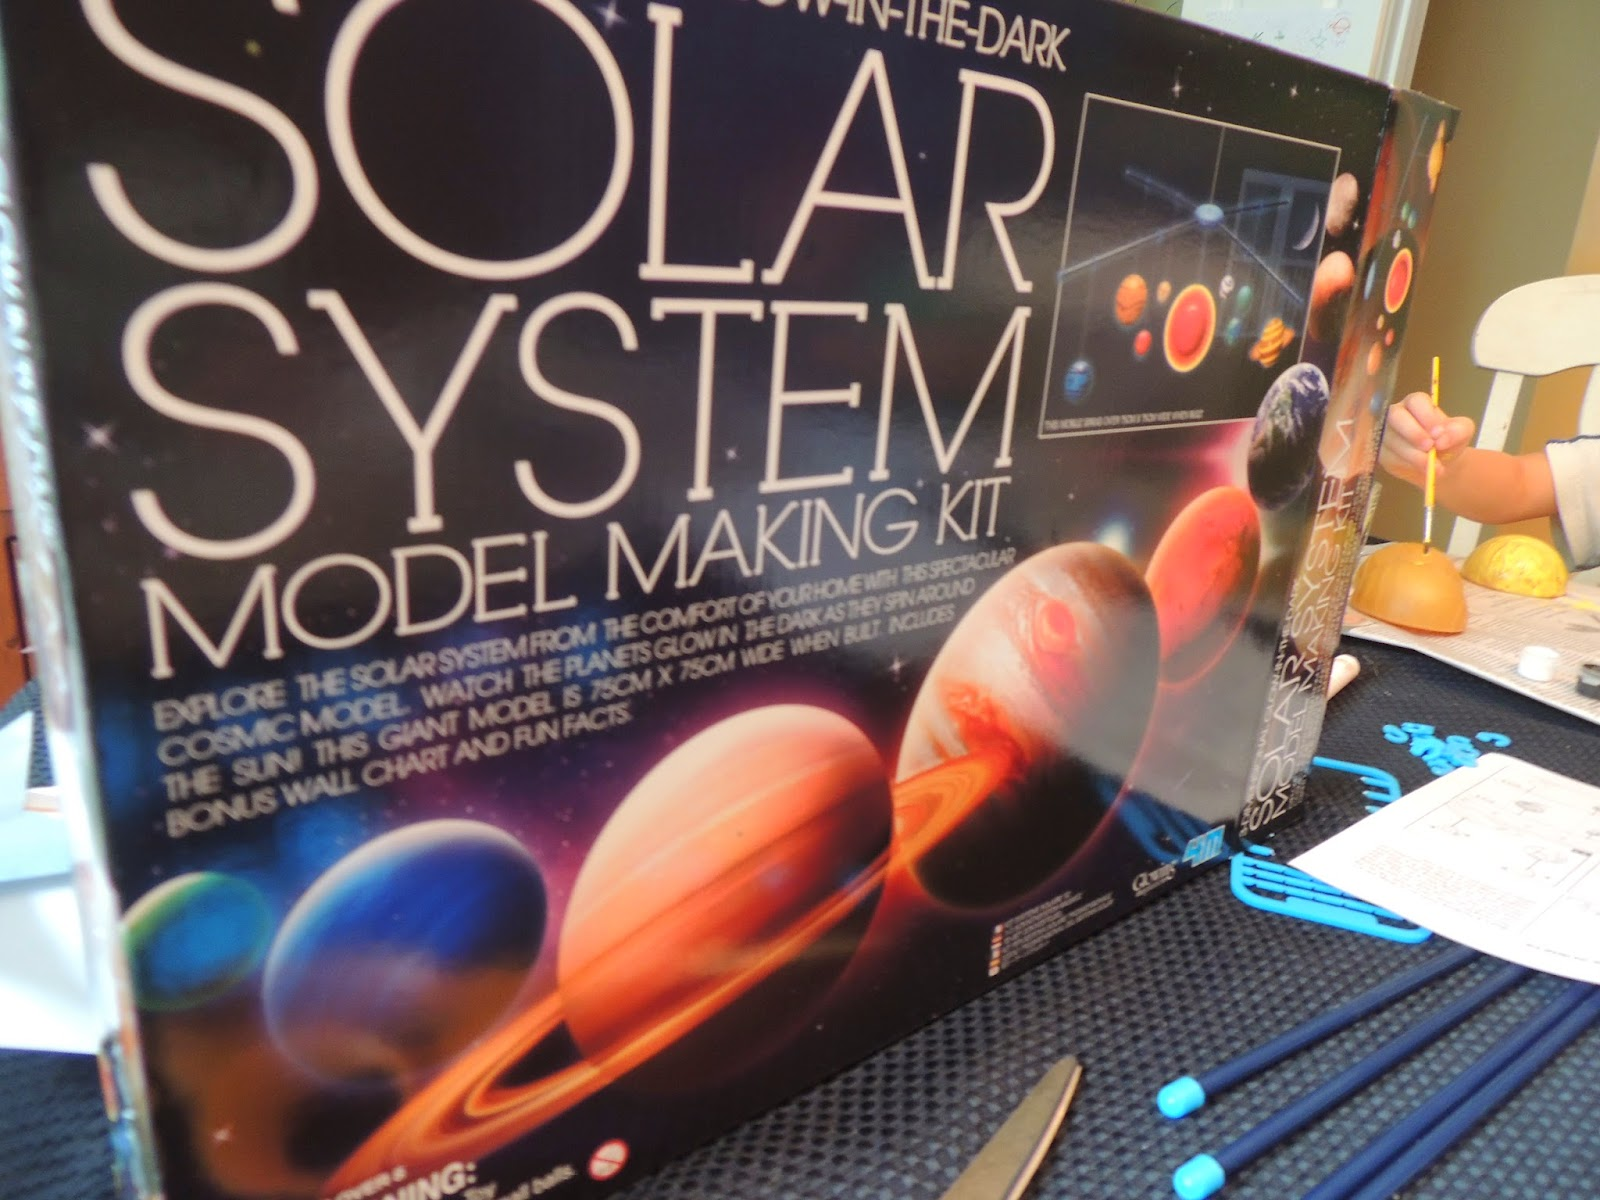 http://www.amazon.com/4M-5219-solar-system-kit/dp/B00007L12U/ref=sr_1_4?s=toys-and-games&ie=UTF8&qid=1407193785&sr=1-4&keywords=solar+system+mobile